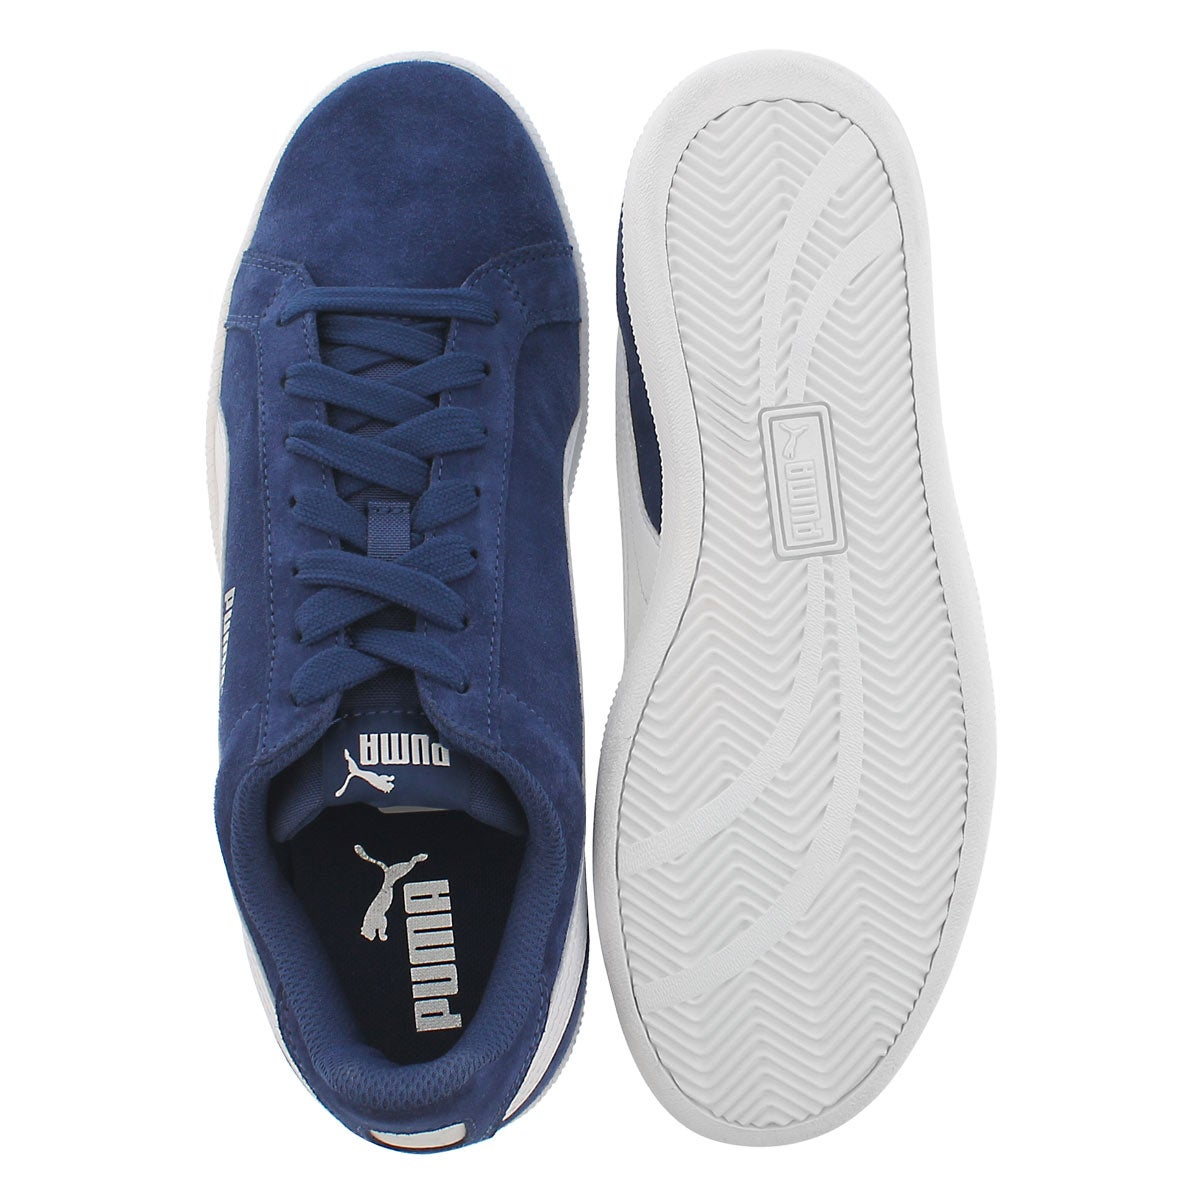 Mns Puma Smash blue/white sneaker